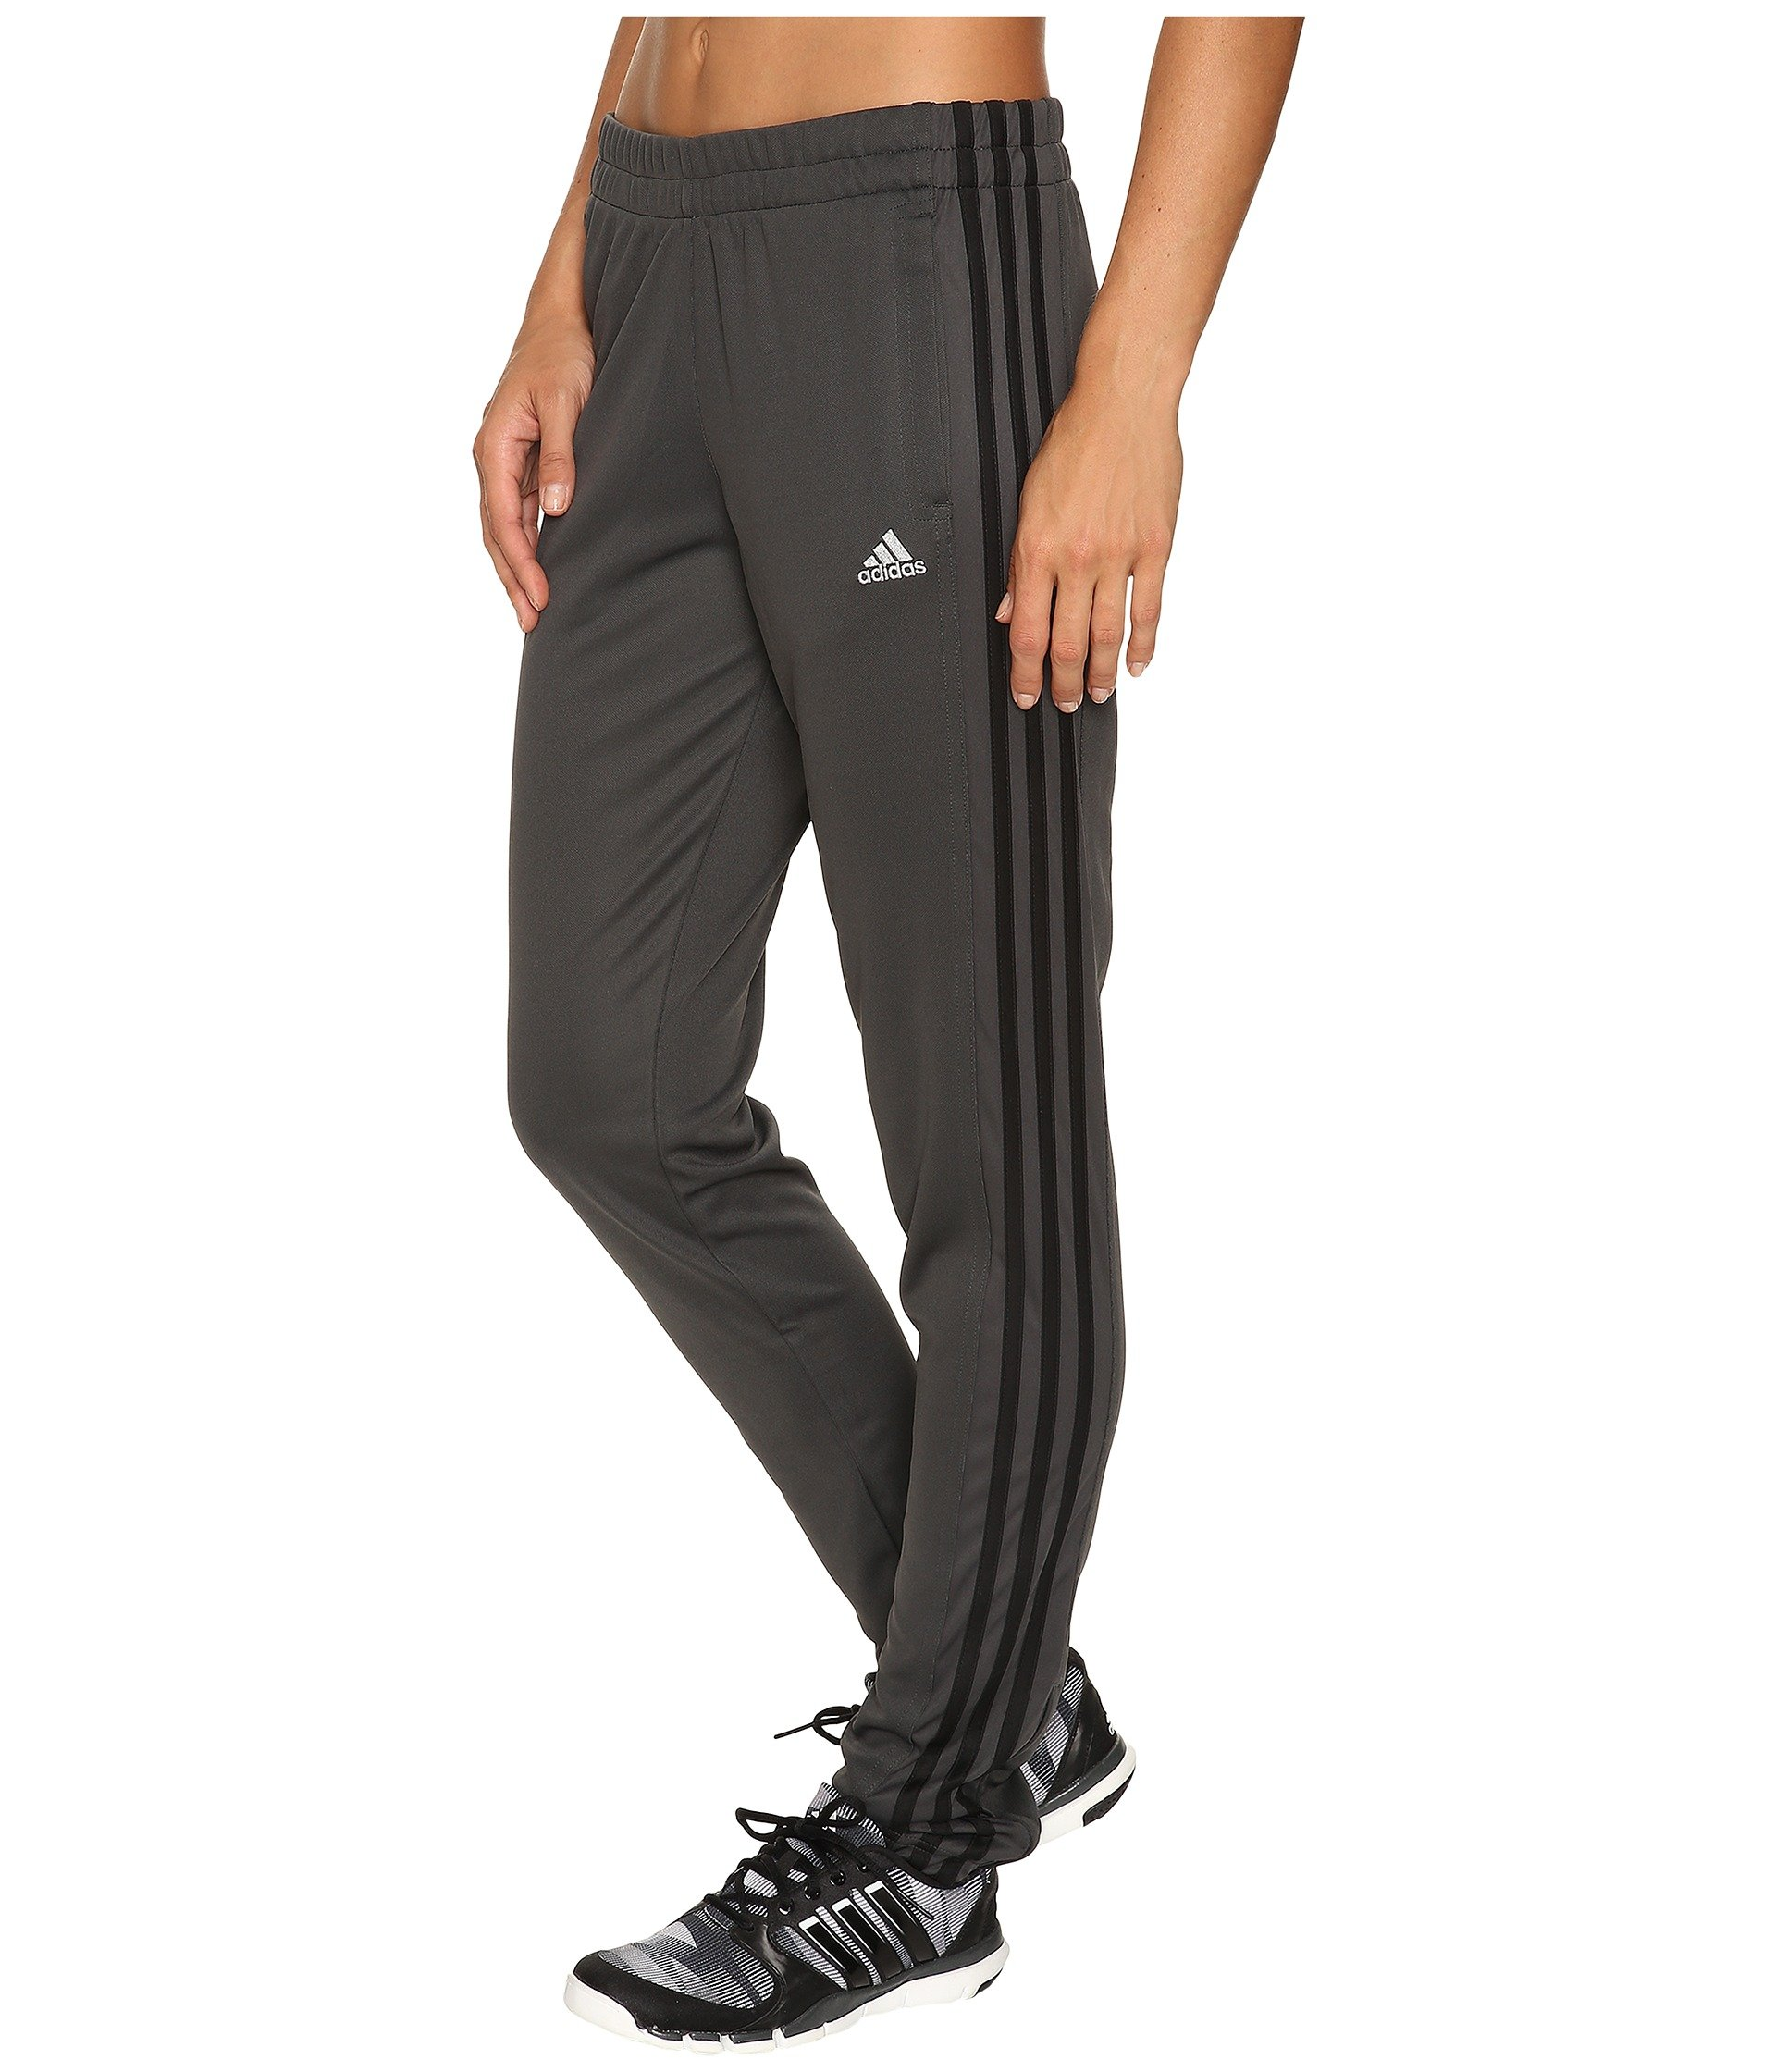 adidas Women's T10 Pants, Dark Grey/Black, XX-Large by adidas